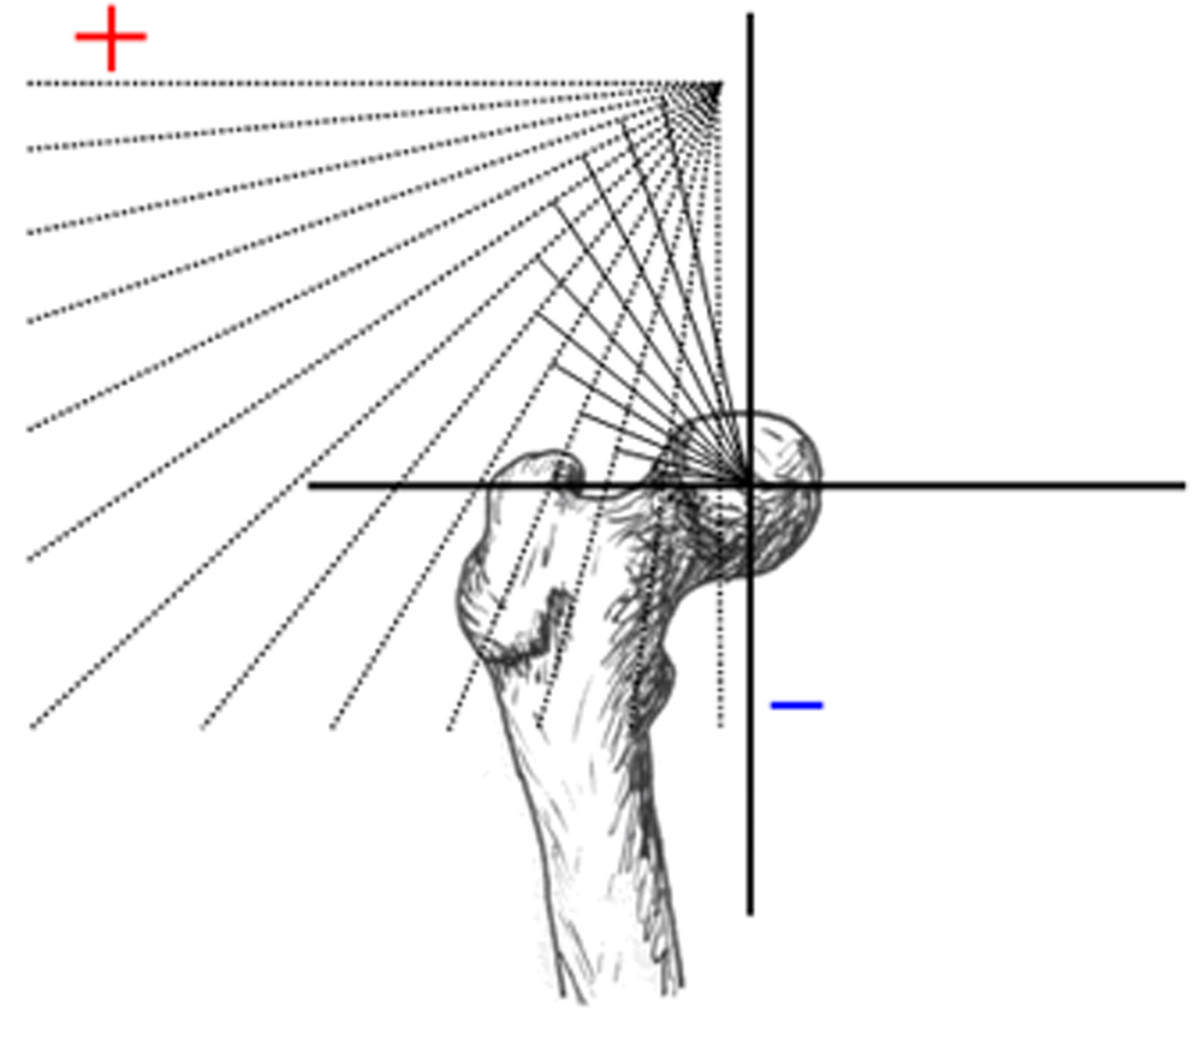 http://static-content.springer.com/image/art%3A10.1186%2F1749-799X-6-6/MediaObjects/13018_2010_Article_241_Fig9_HTML.jpg